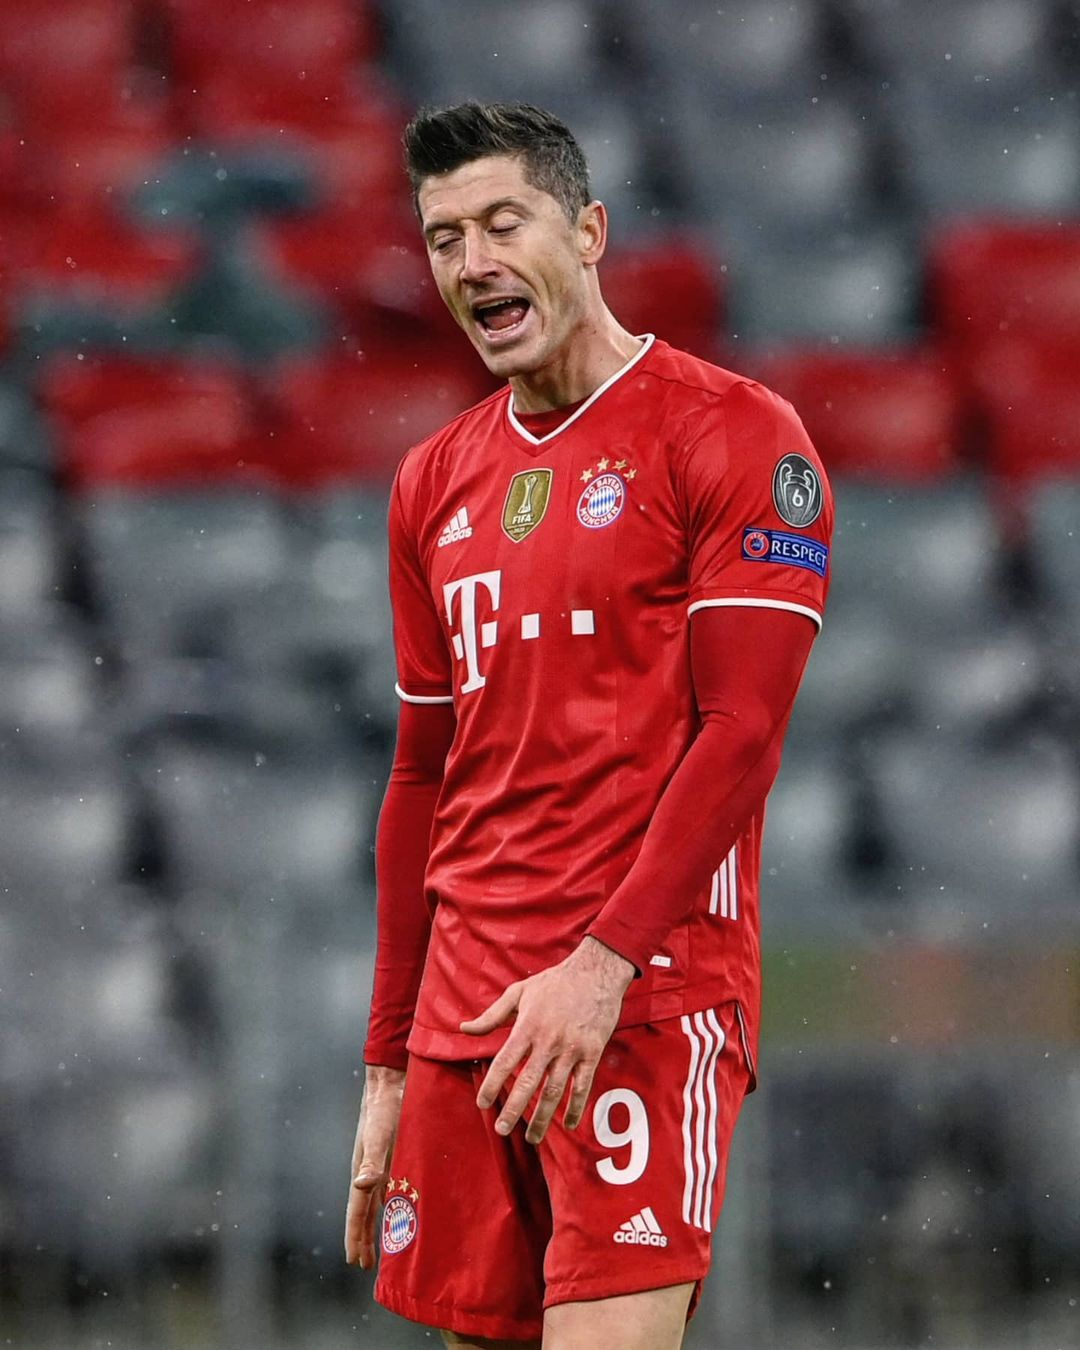 Lewandowski will be out for around 4 weeks with a knee injury. Who will step up?...